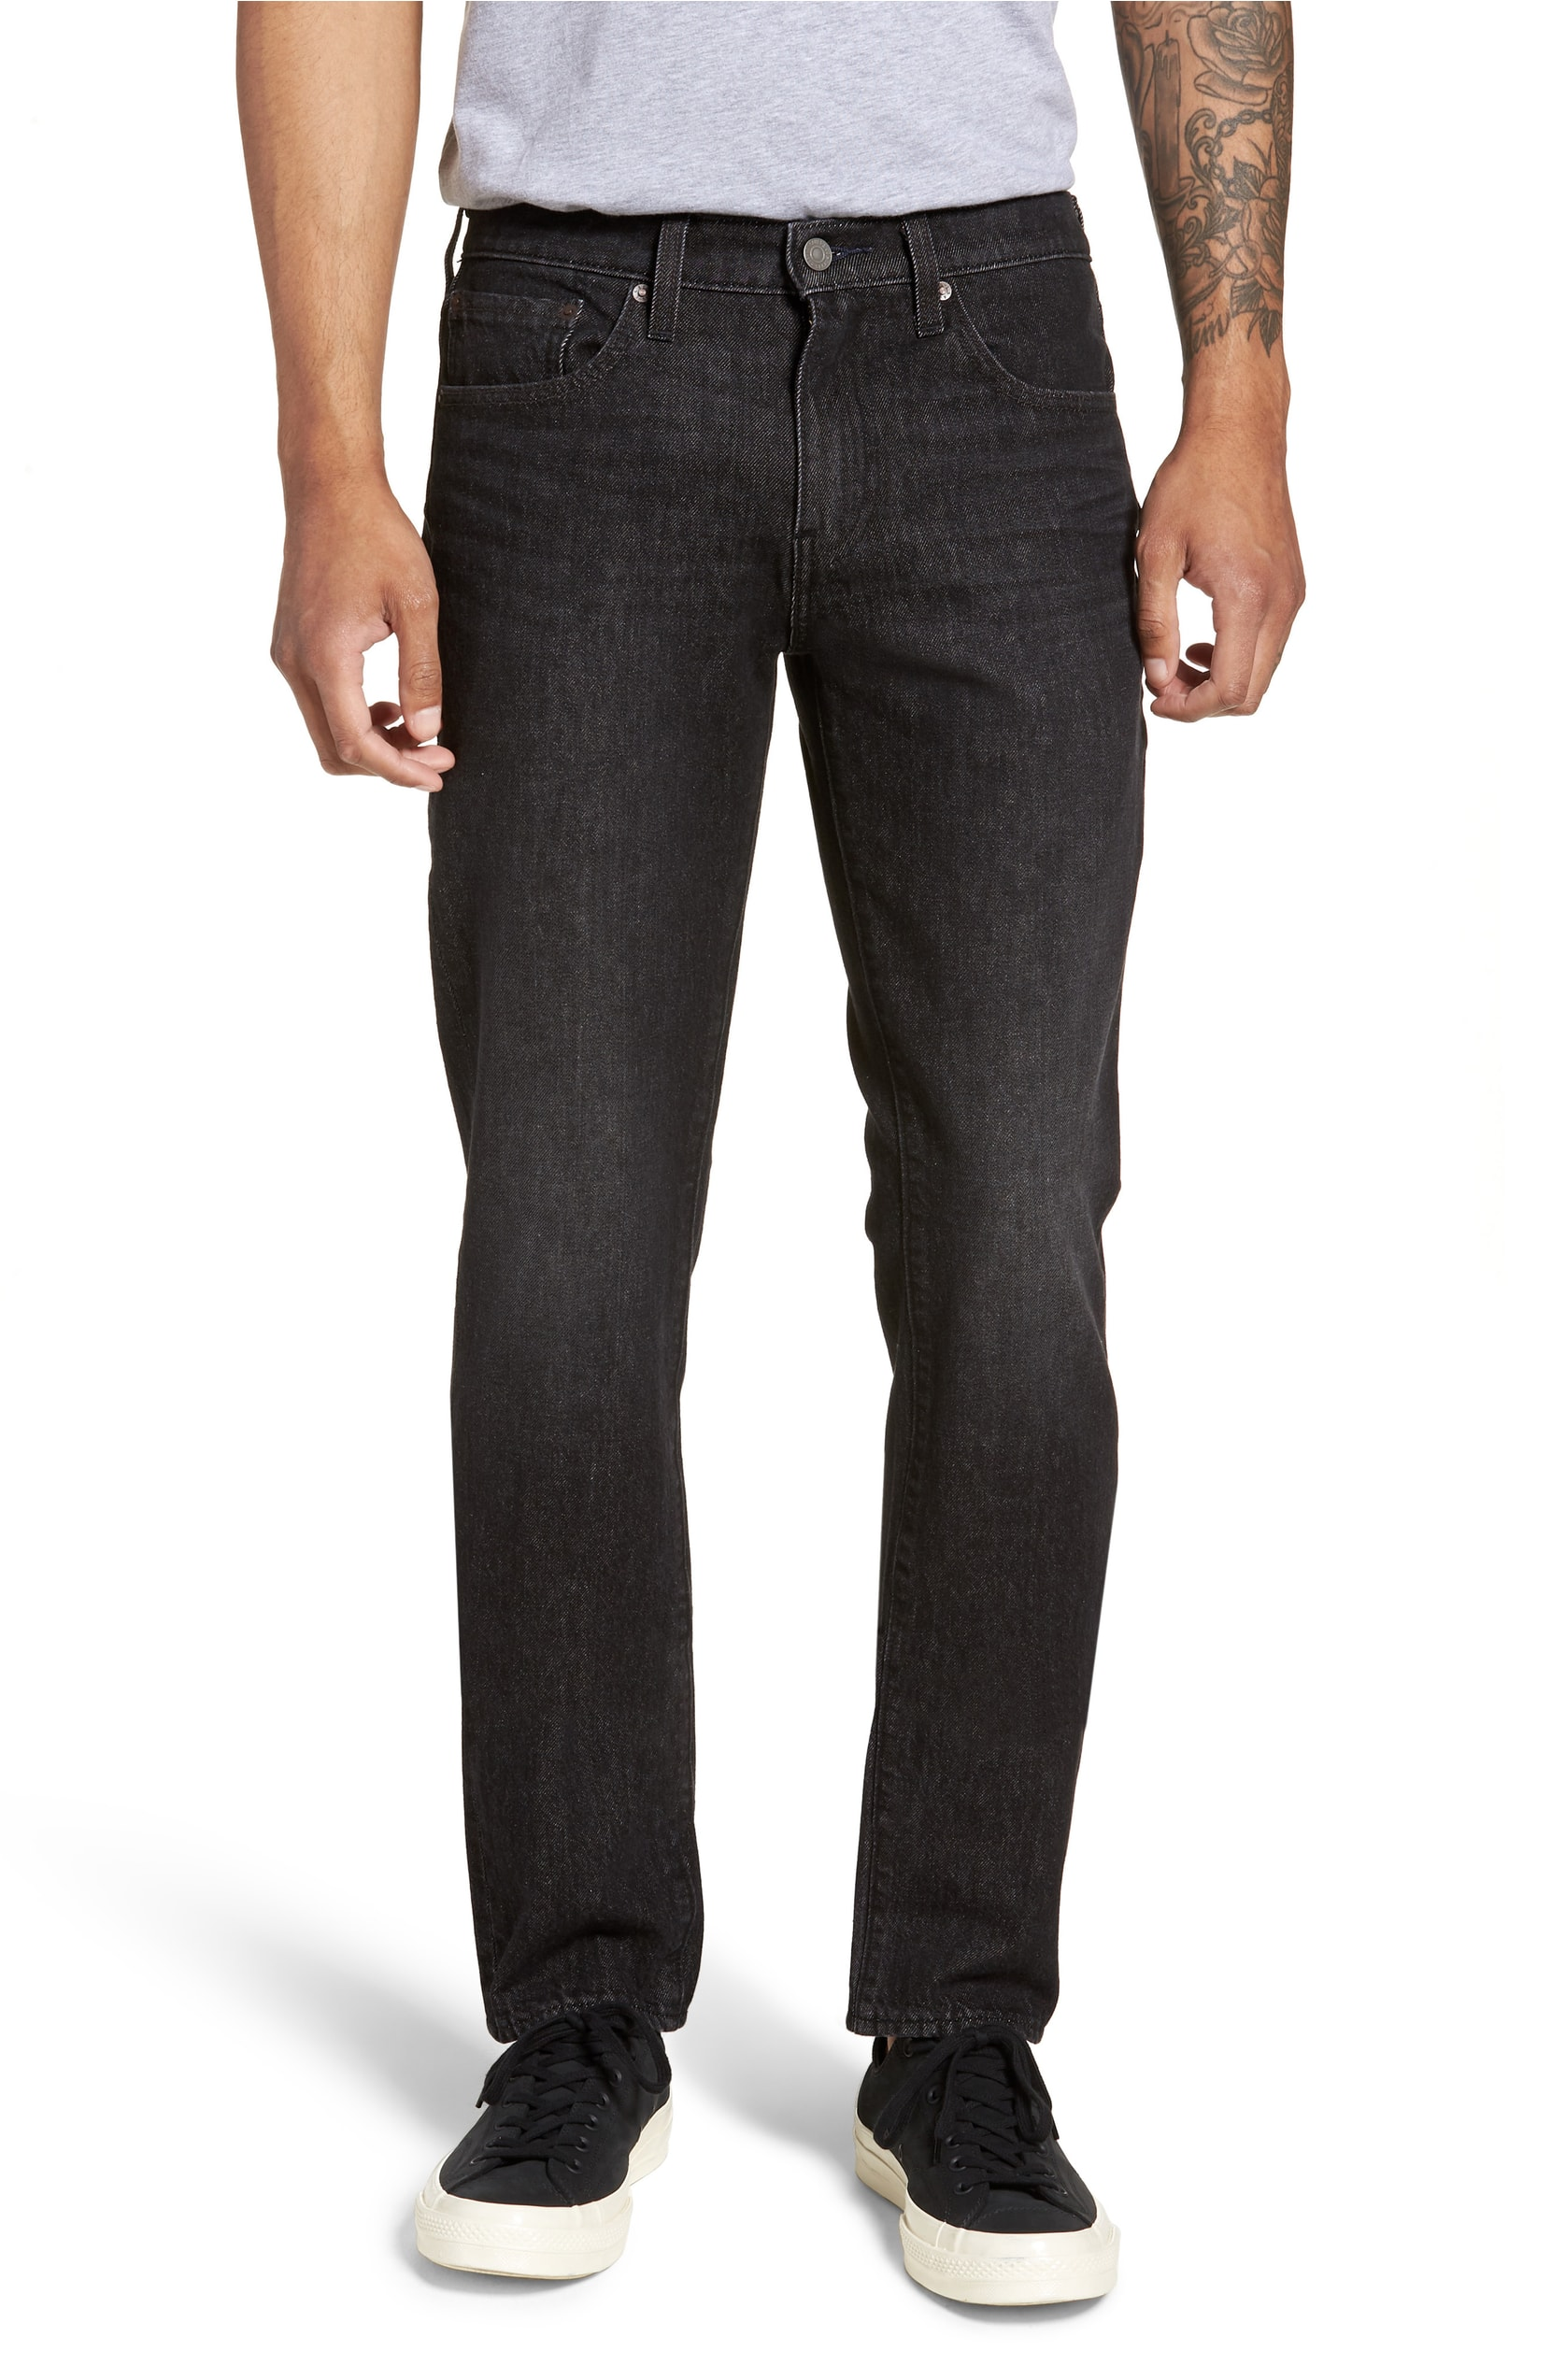 511 Slim Fit Jeans. Sale: $52.90 / After Sale: $79.50. (Image: Nordstrom){ }